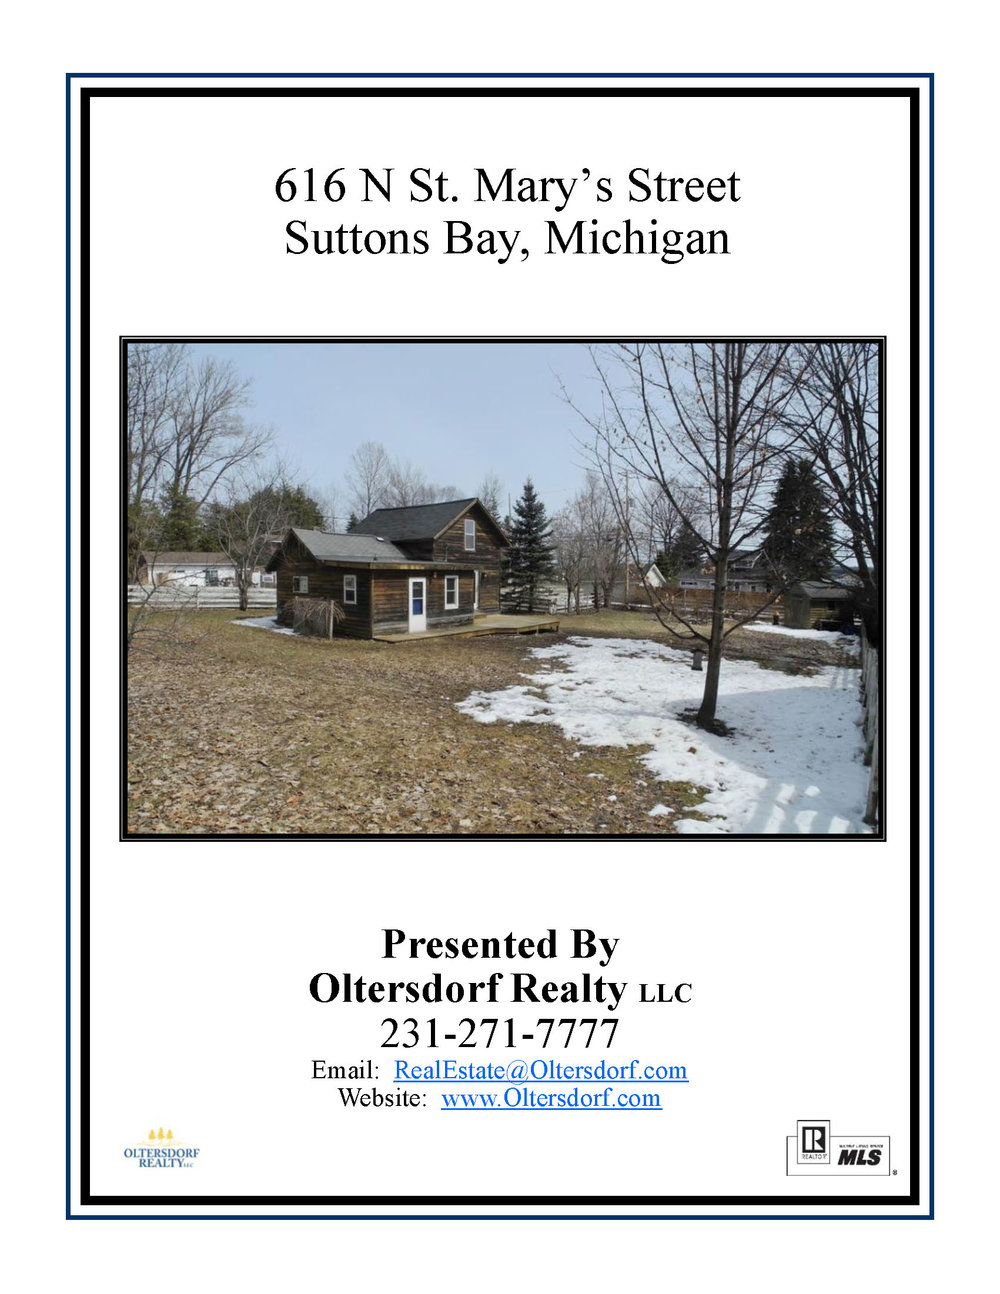 616 N St. Mary's, Suttons Bay, House for sale by Oltersdorf Realty LLC (1).jpg